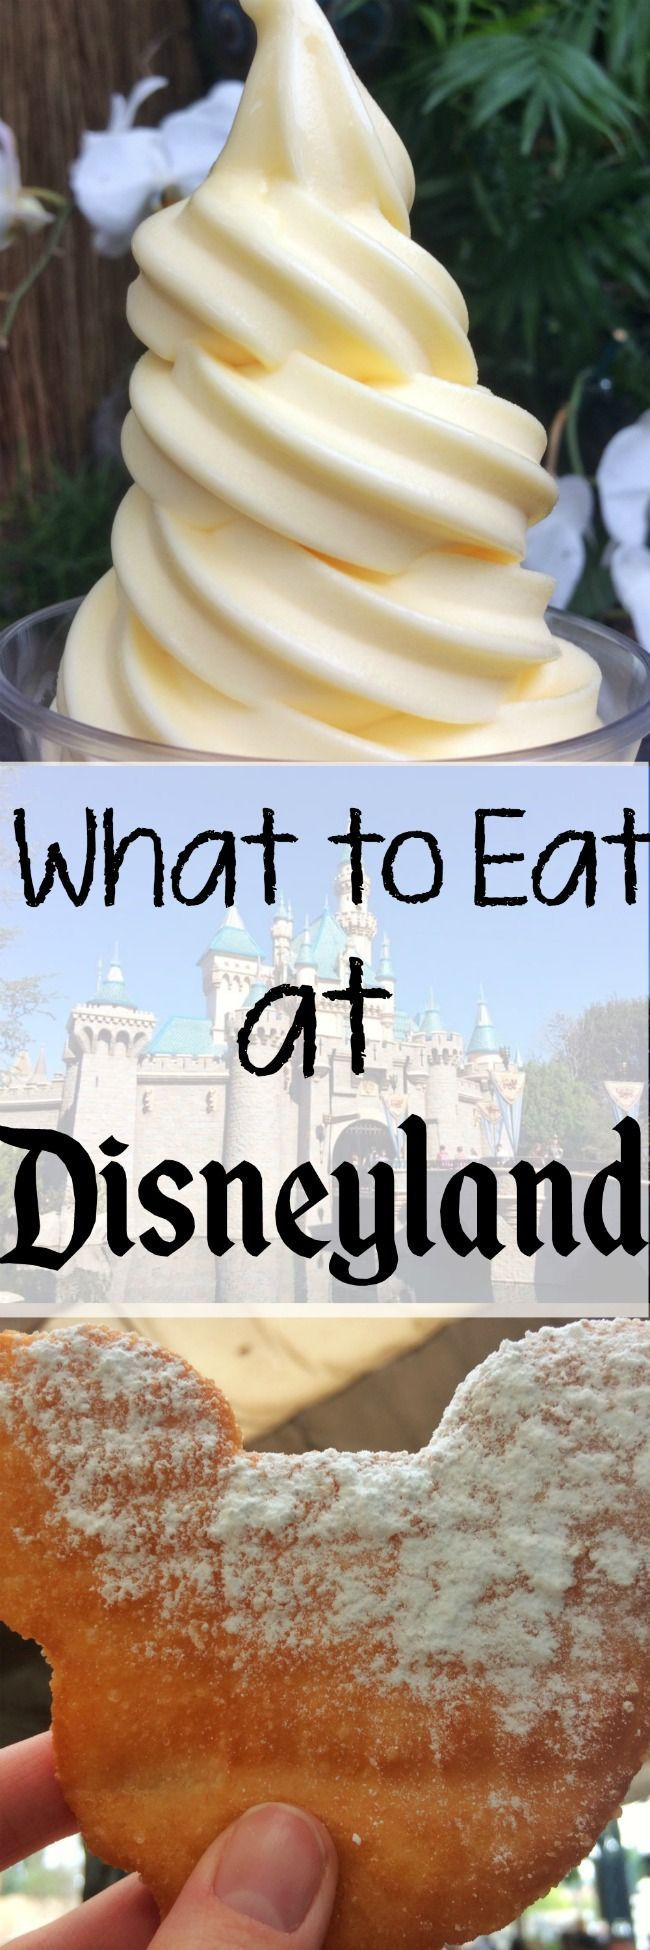 The Best Things to Eat at Disneyland!  Disneyland Food, Disneyland food tips, Disneyland food picture, Disneyland food California, Disneyland Food Hacks